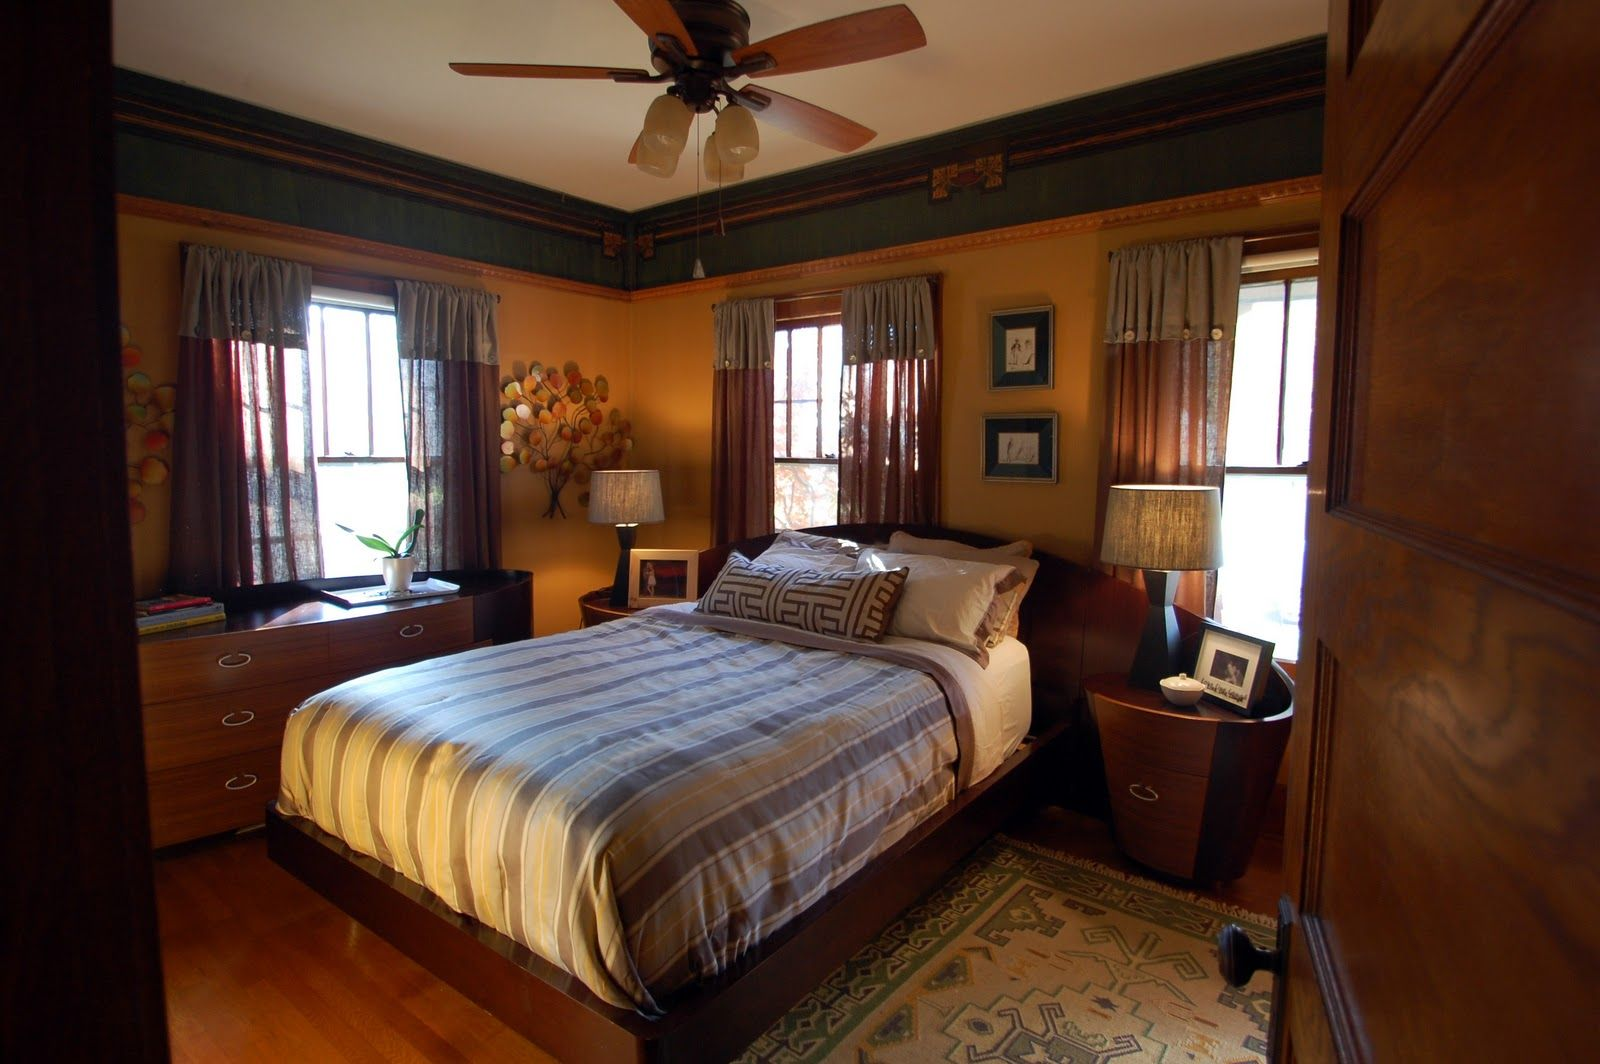 Arts and crafts style bedding - Arts And Crafts Bedroom